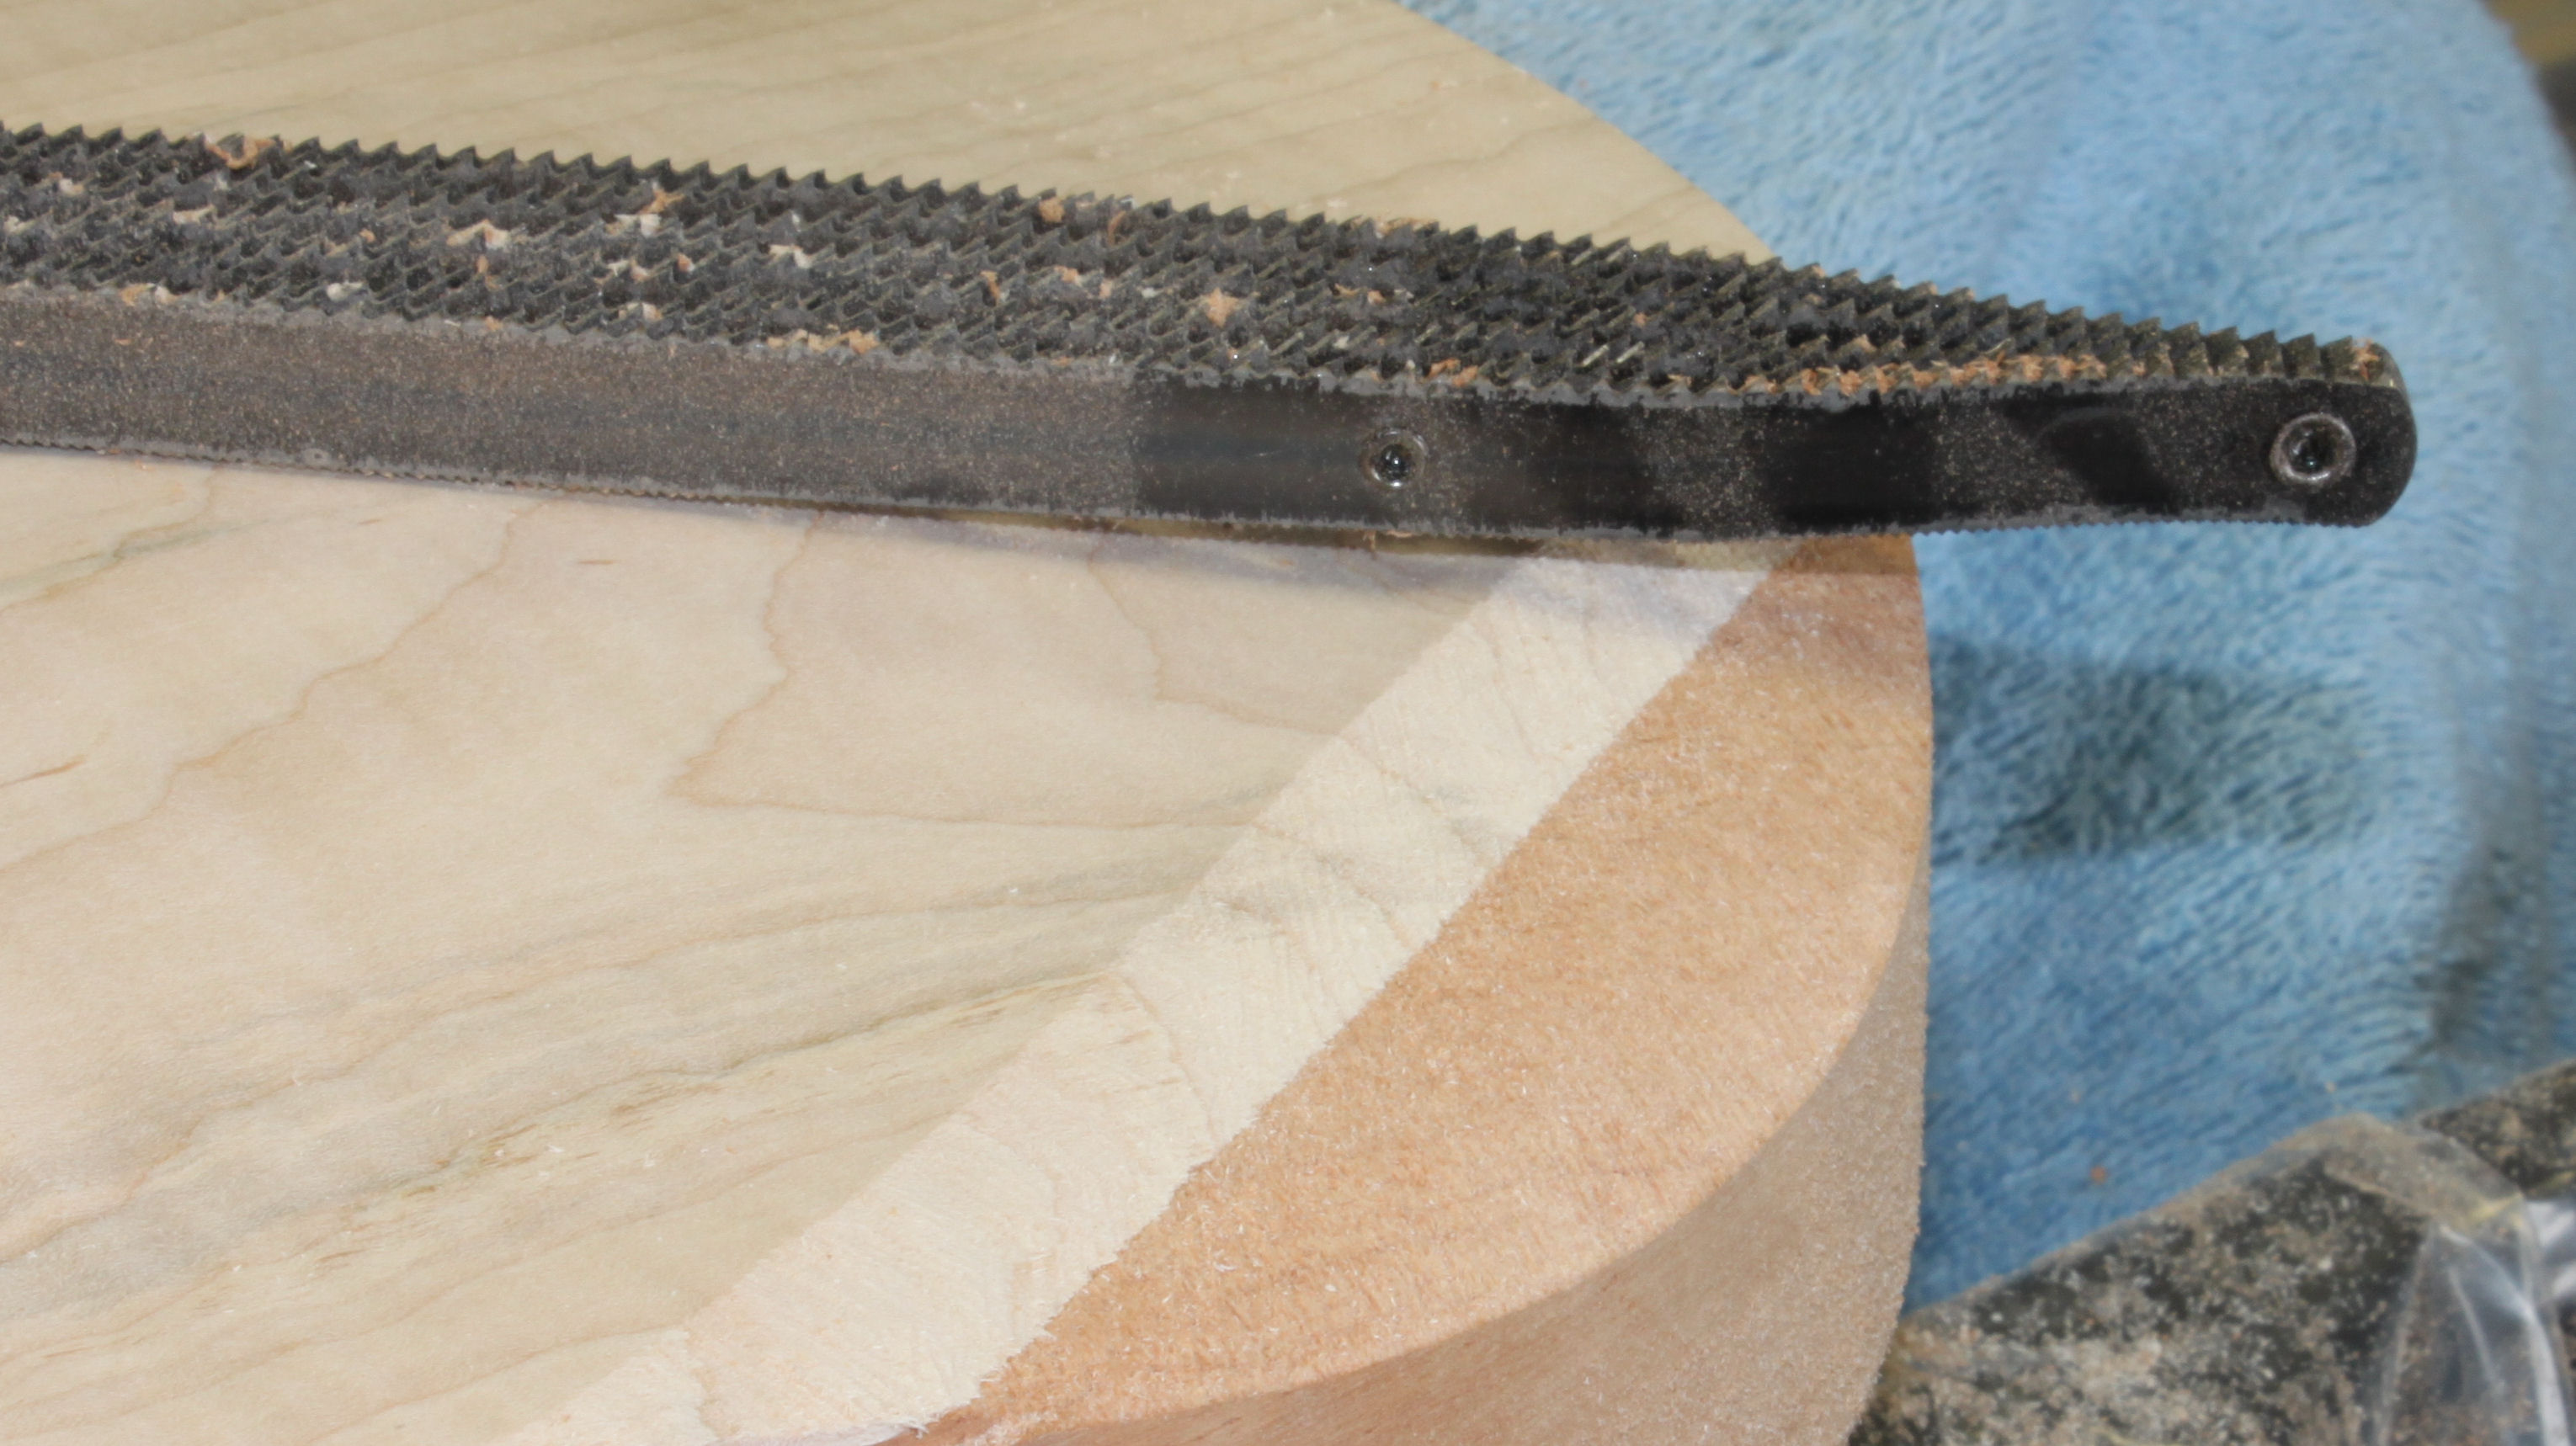 Japanese shinto saw rasp philadelphia luthier tools supplies front contour bevel on guitar body ccuart Gallery